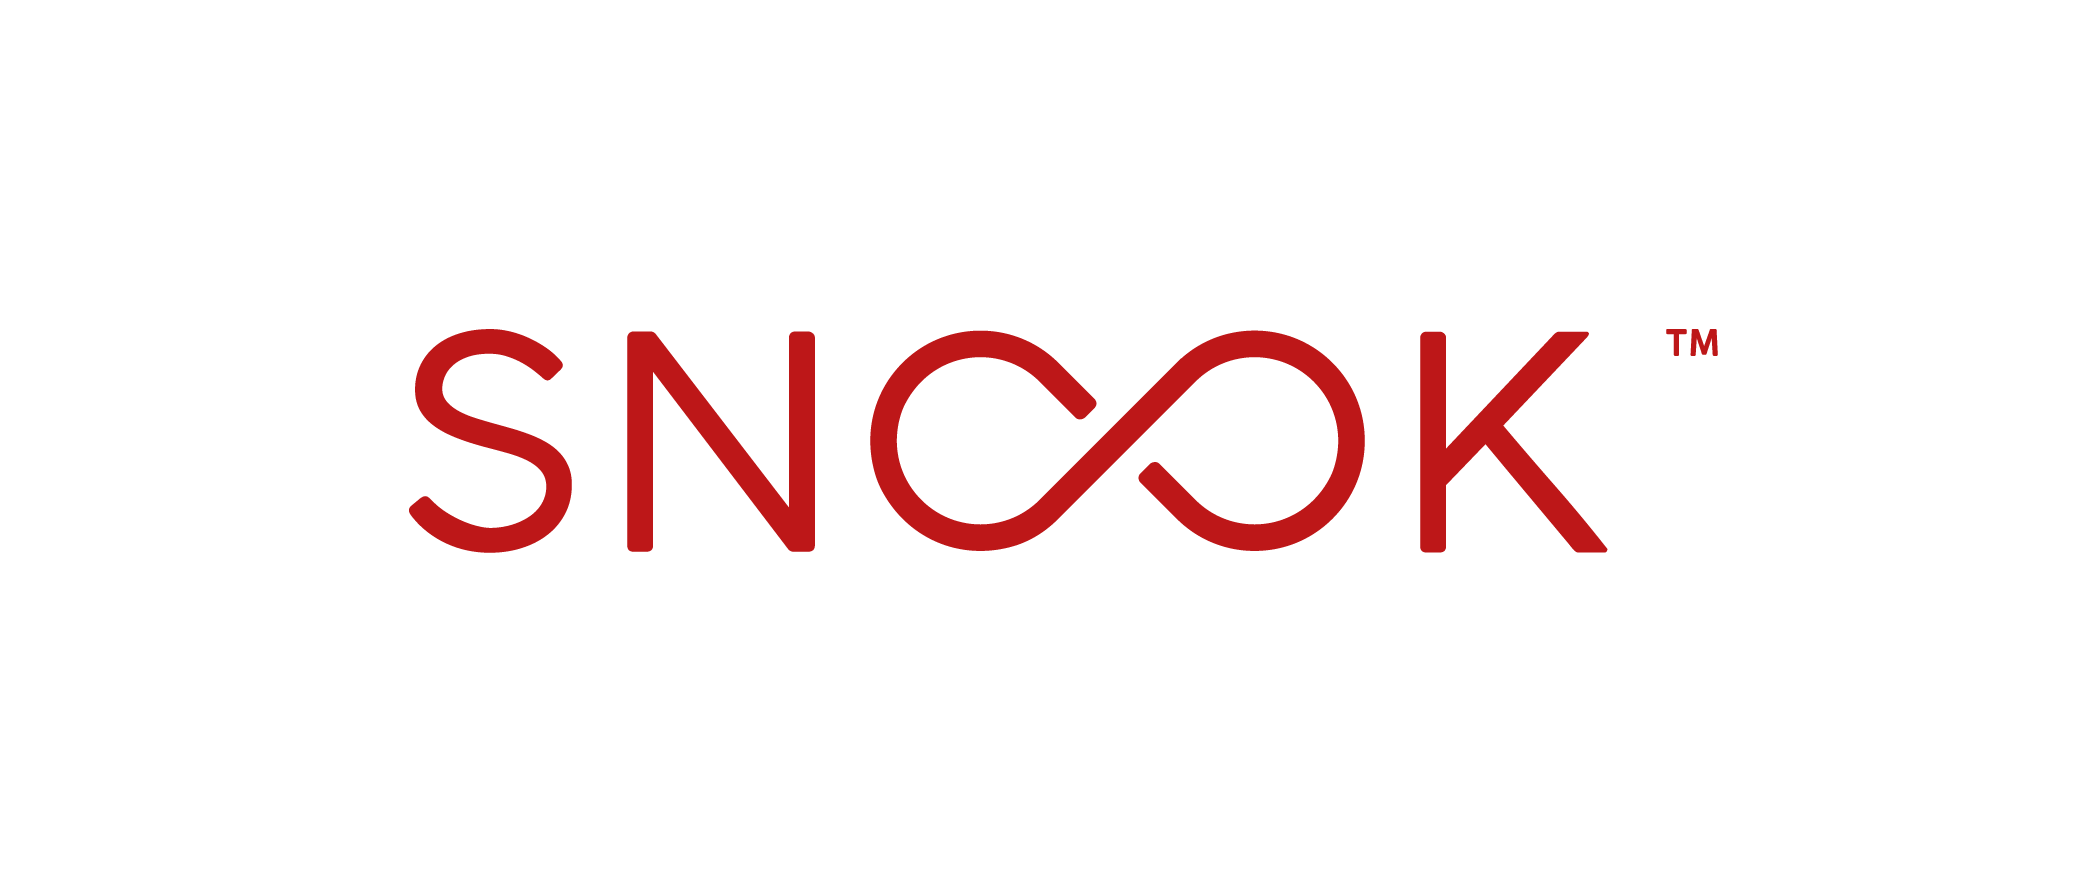 Snook_logo_Red_(1).png